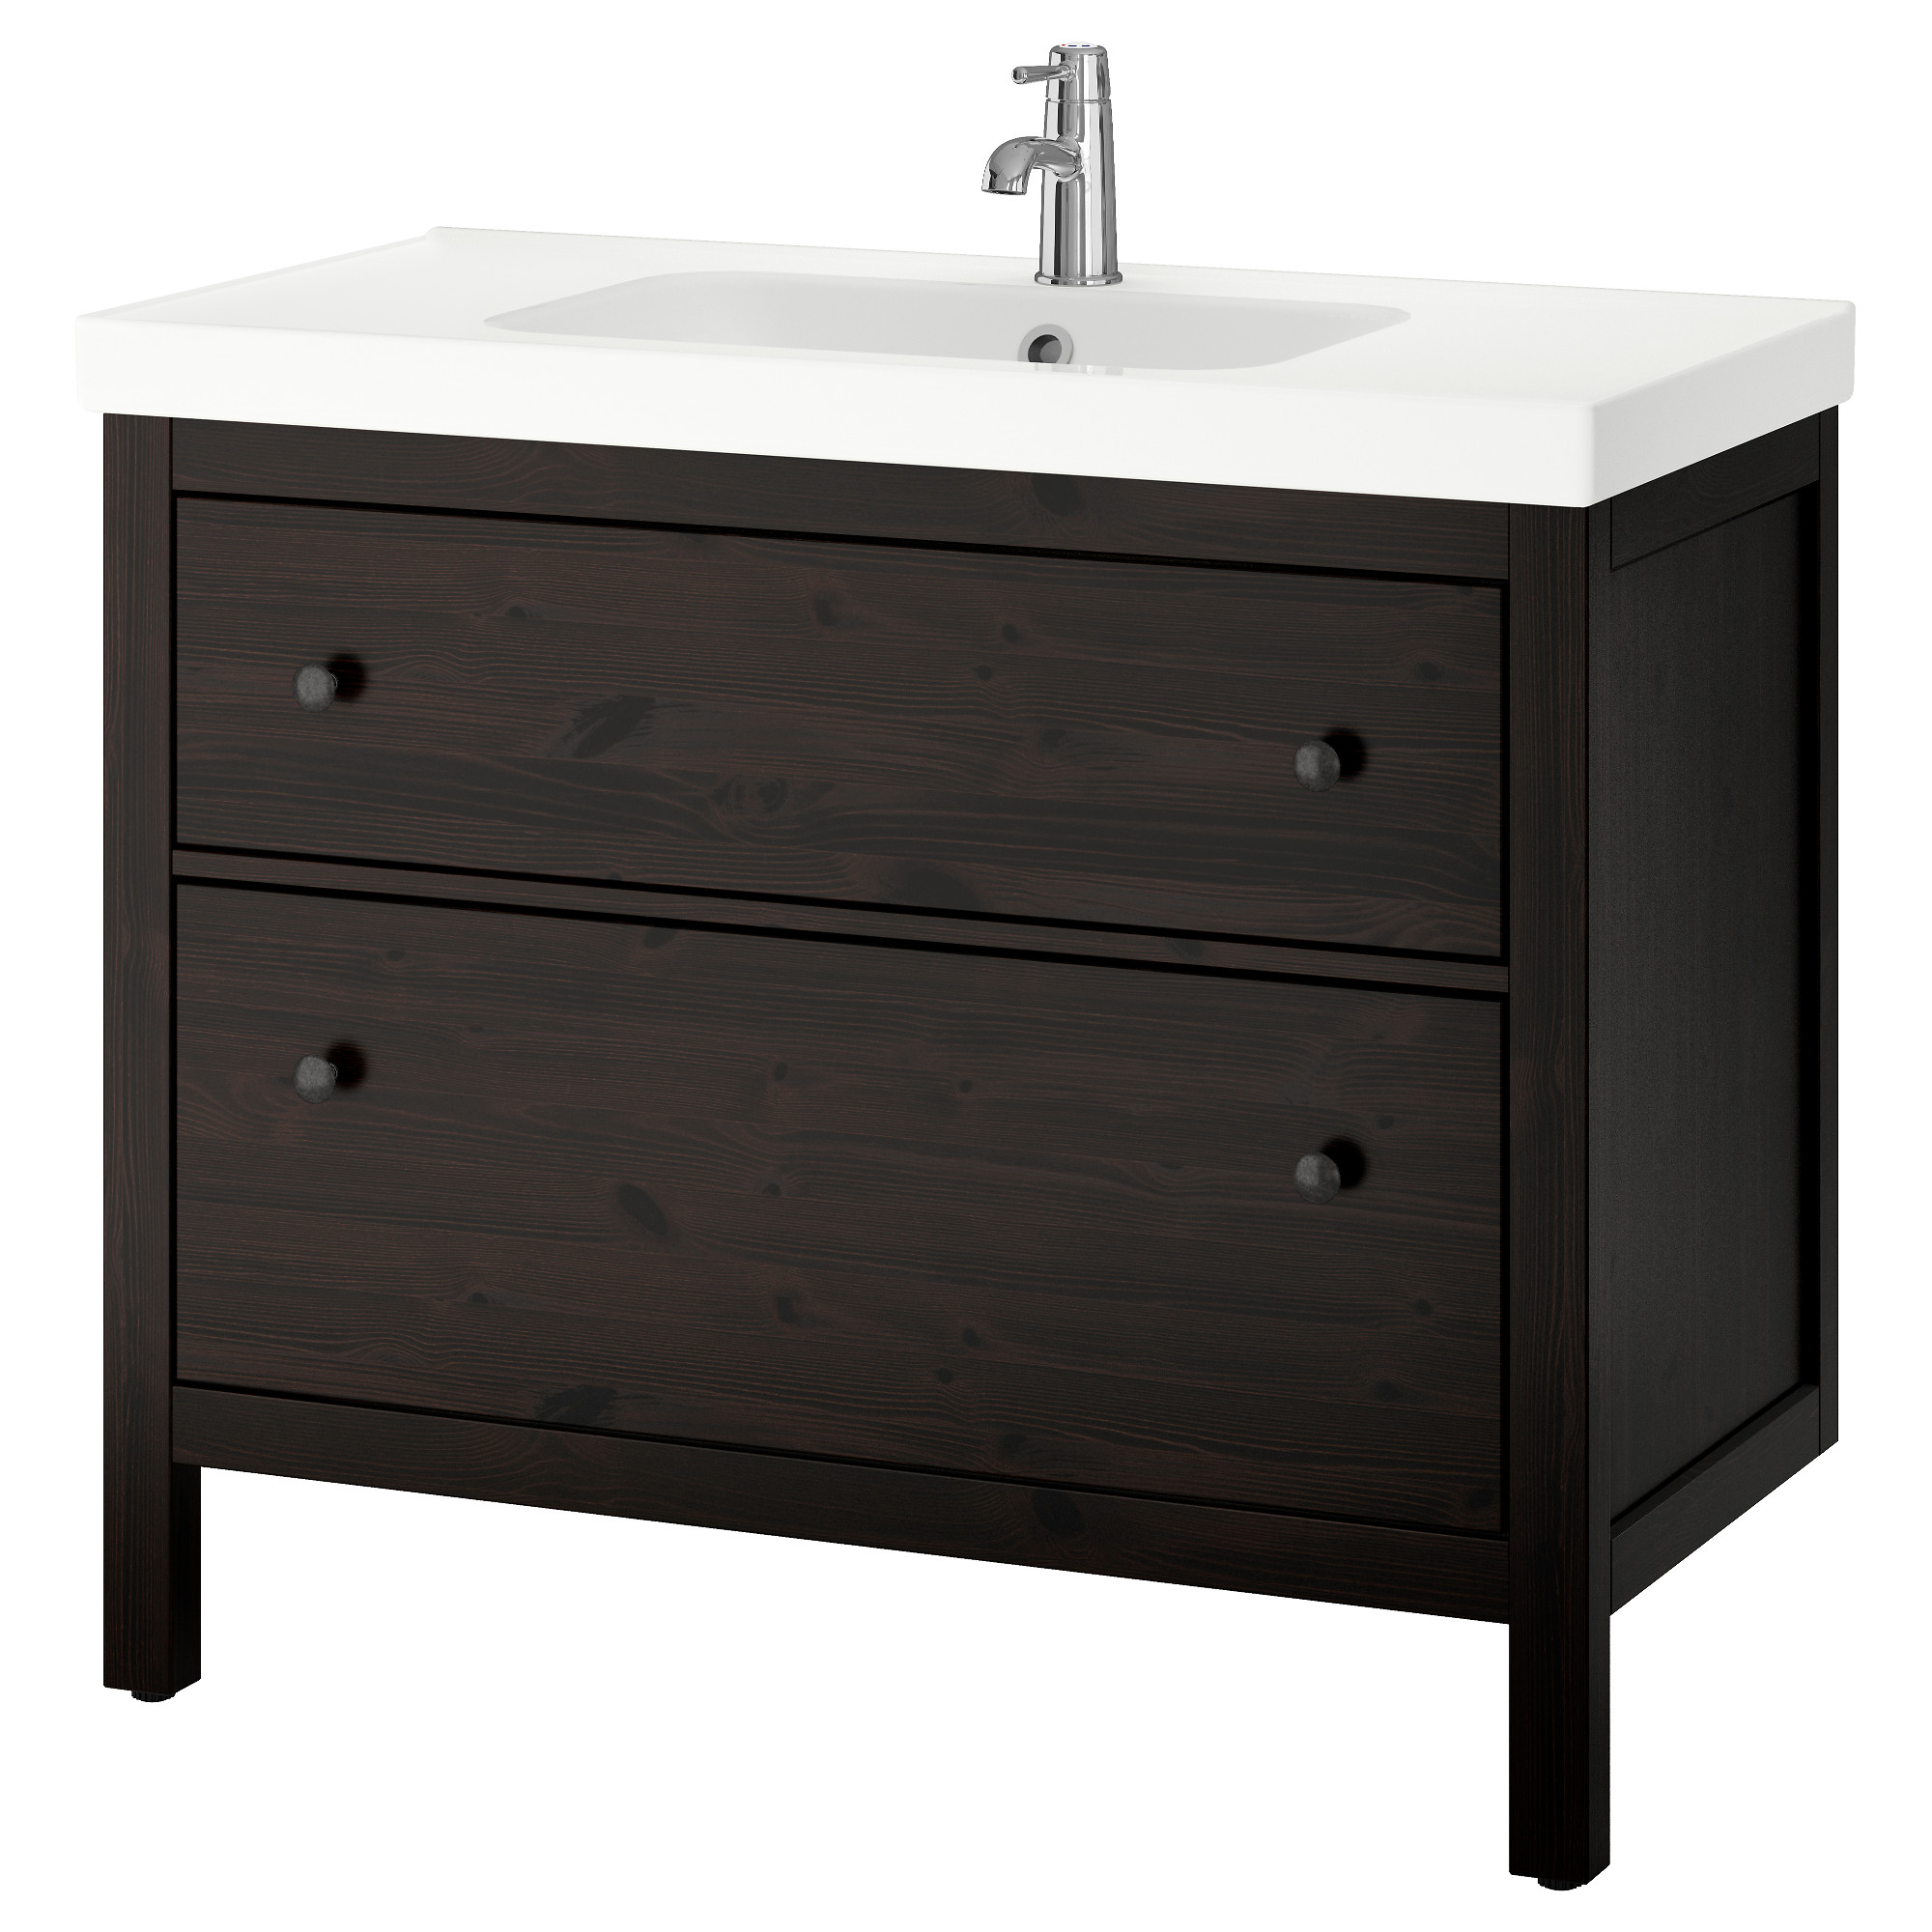 HEMNES / ODENSVIK Sink Cabinet With 2 Drawers   Black Brown Stain   IKEA